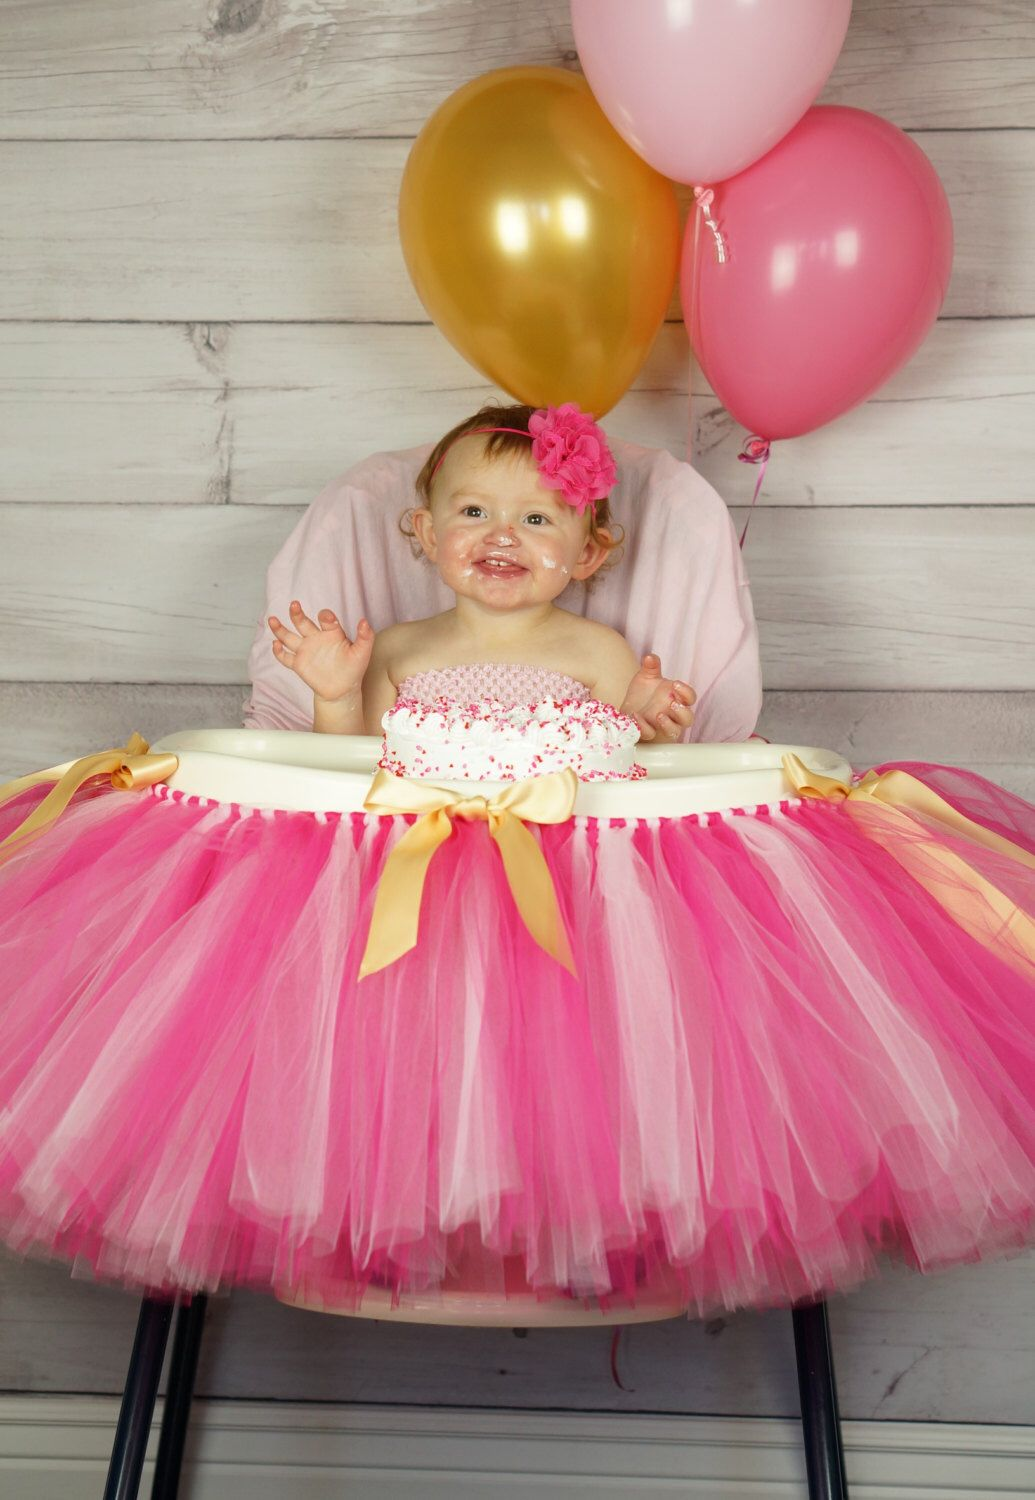 High Chair Tutu Canyon Swing Queenstown In New Zealand Pink Gold Highchair First Birthday